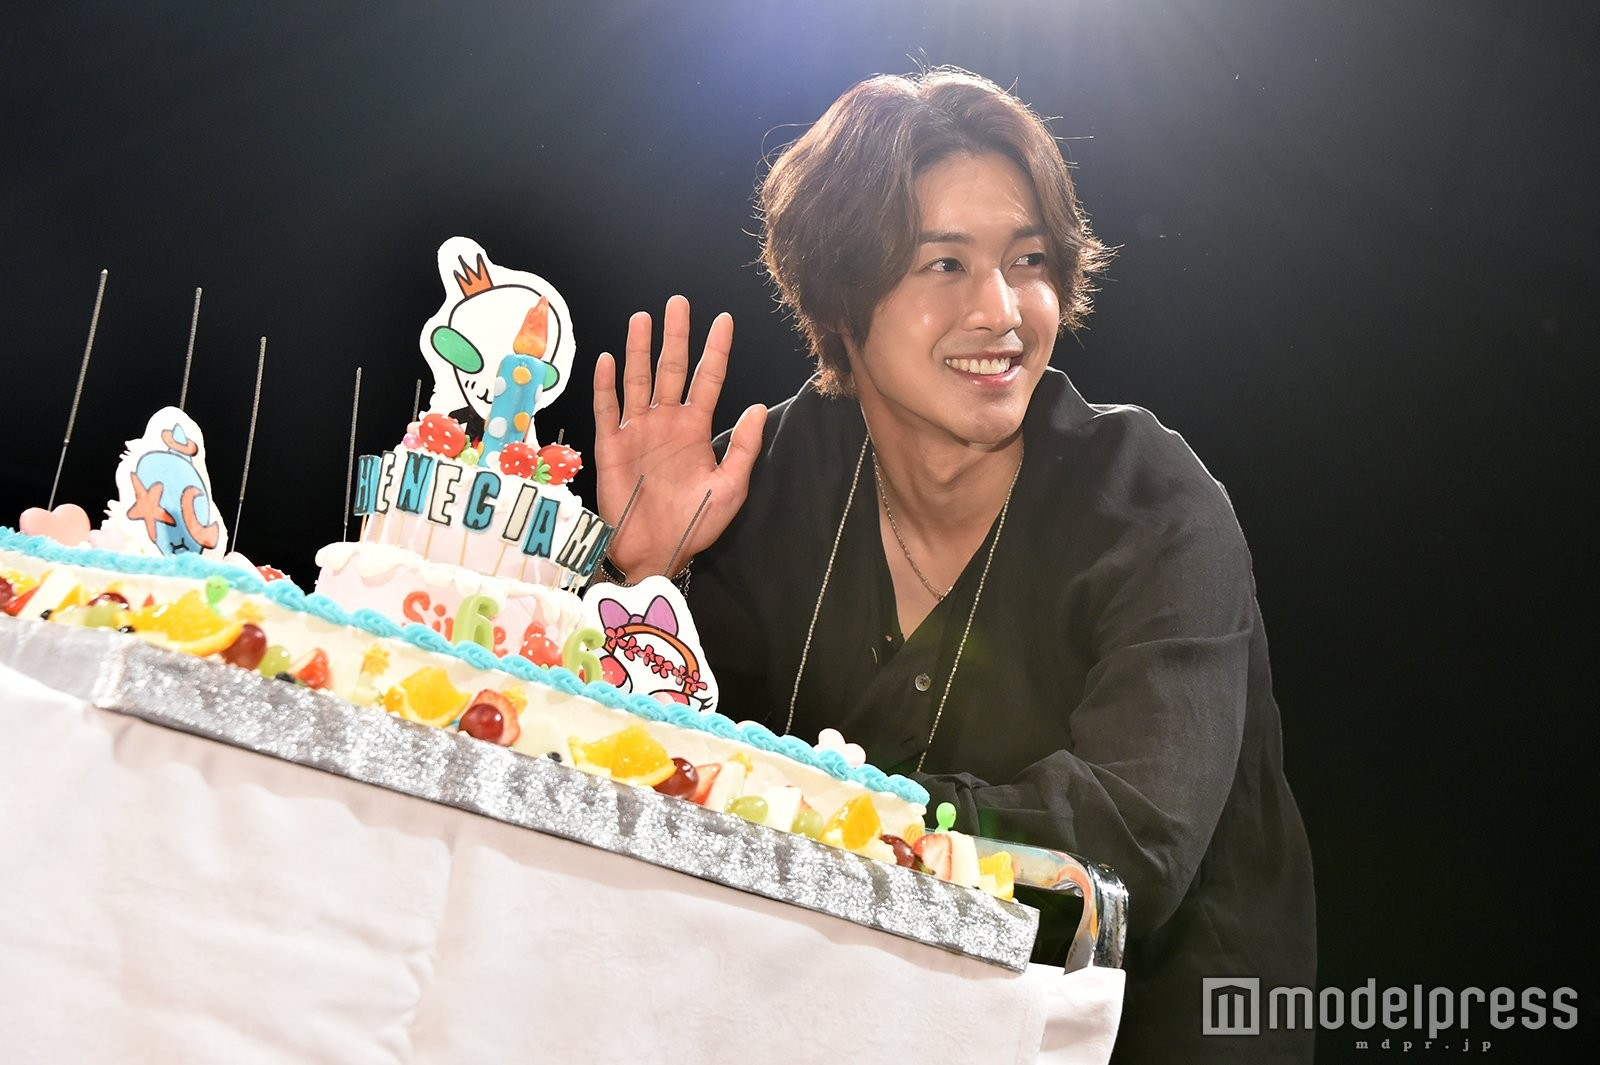 [Fancams] Kim Hyun joong Take My Hand Press Conference at Studio Coast Tokyo ~ Happy Birthday KHJ [2018.06.06]